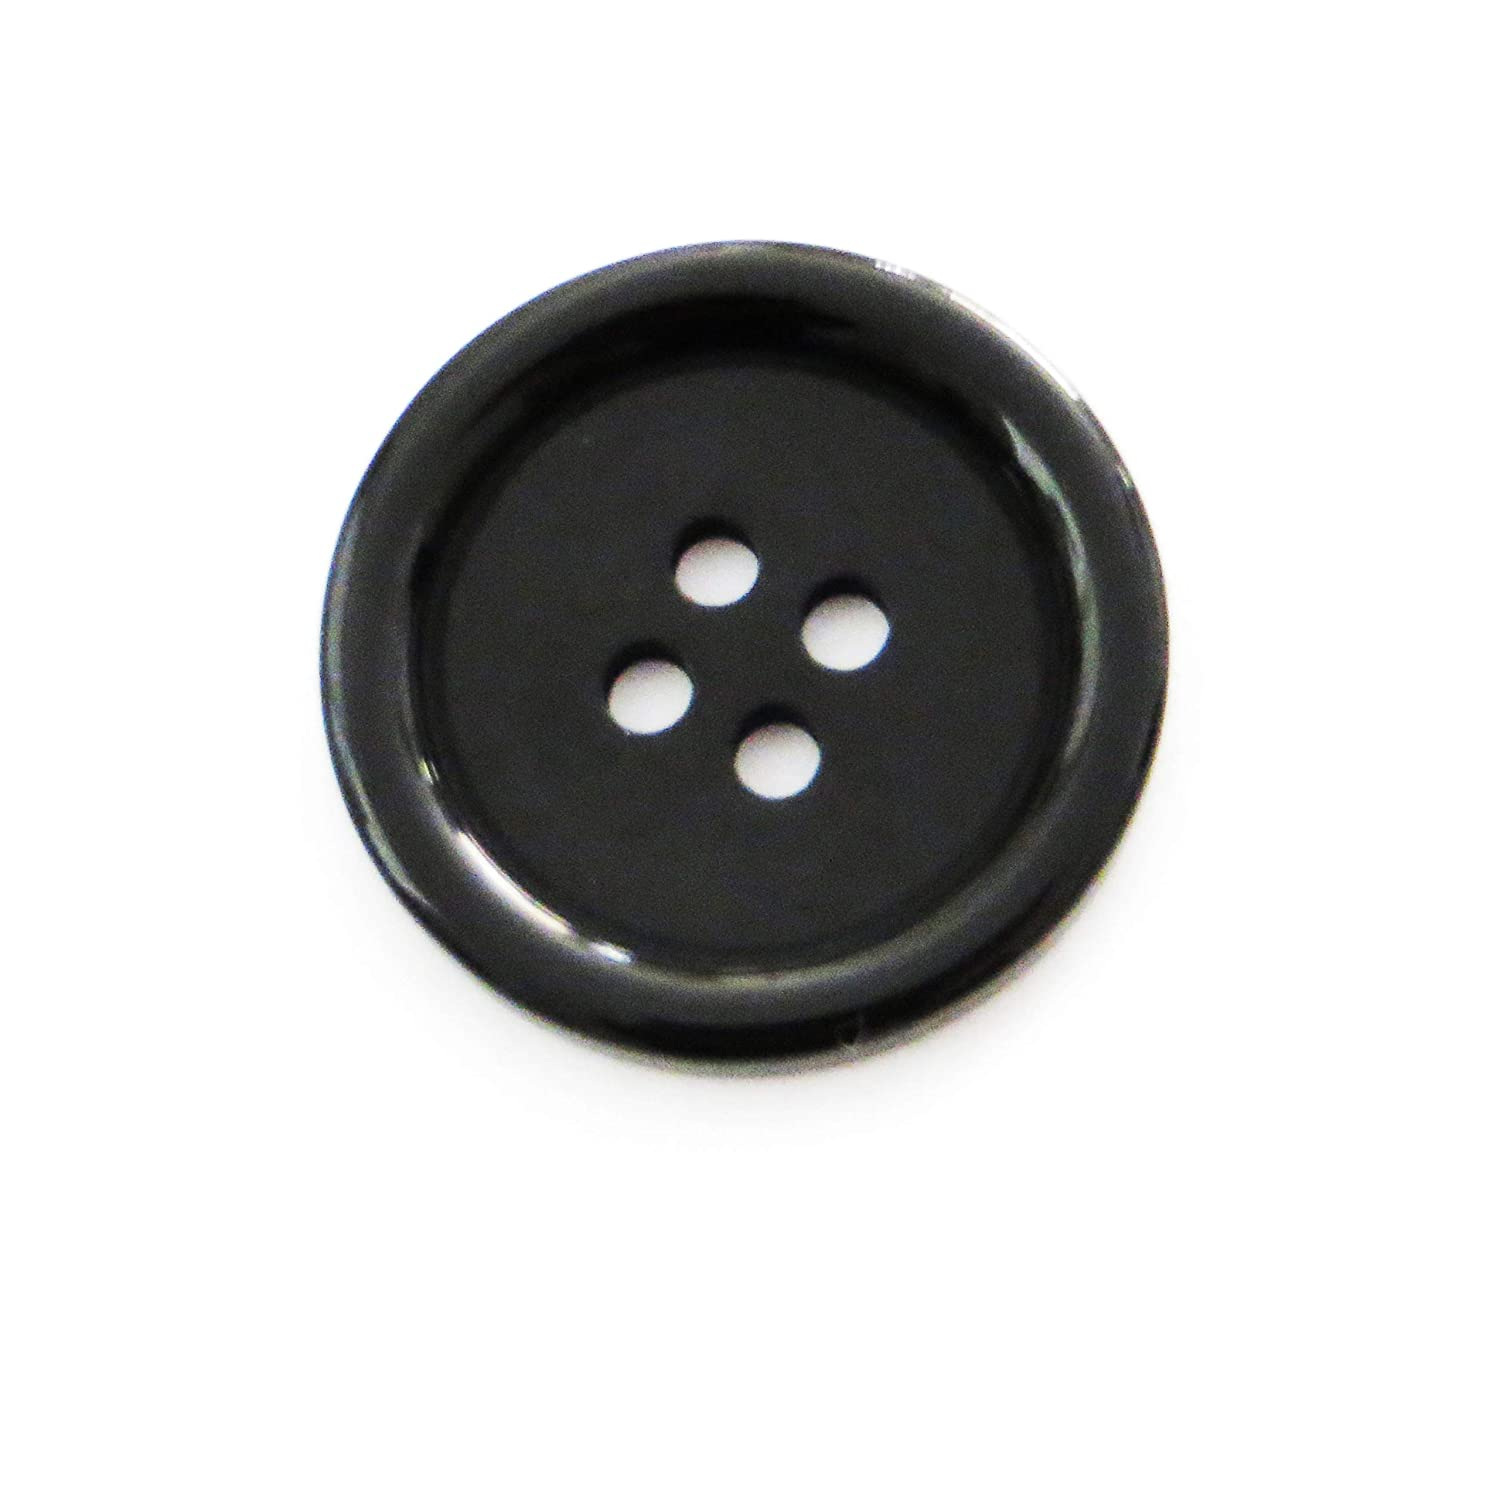 """Shirts Black Buttons 1 Inch White Black Clear Shorts 4 Hole 10 Pieces Cardigans Skirts Coats 1/"""" Sewing Crafts Replacement Button -Perfect for Crafts Blazers Pants"""